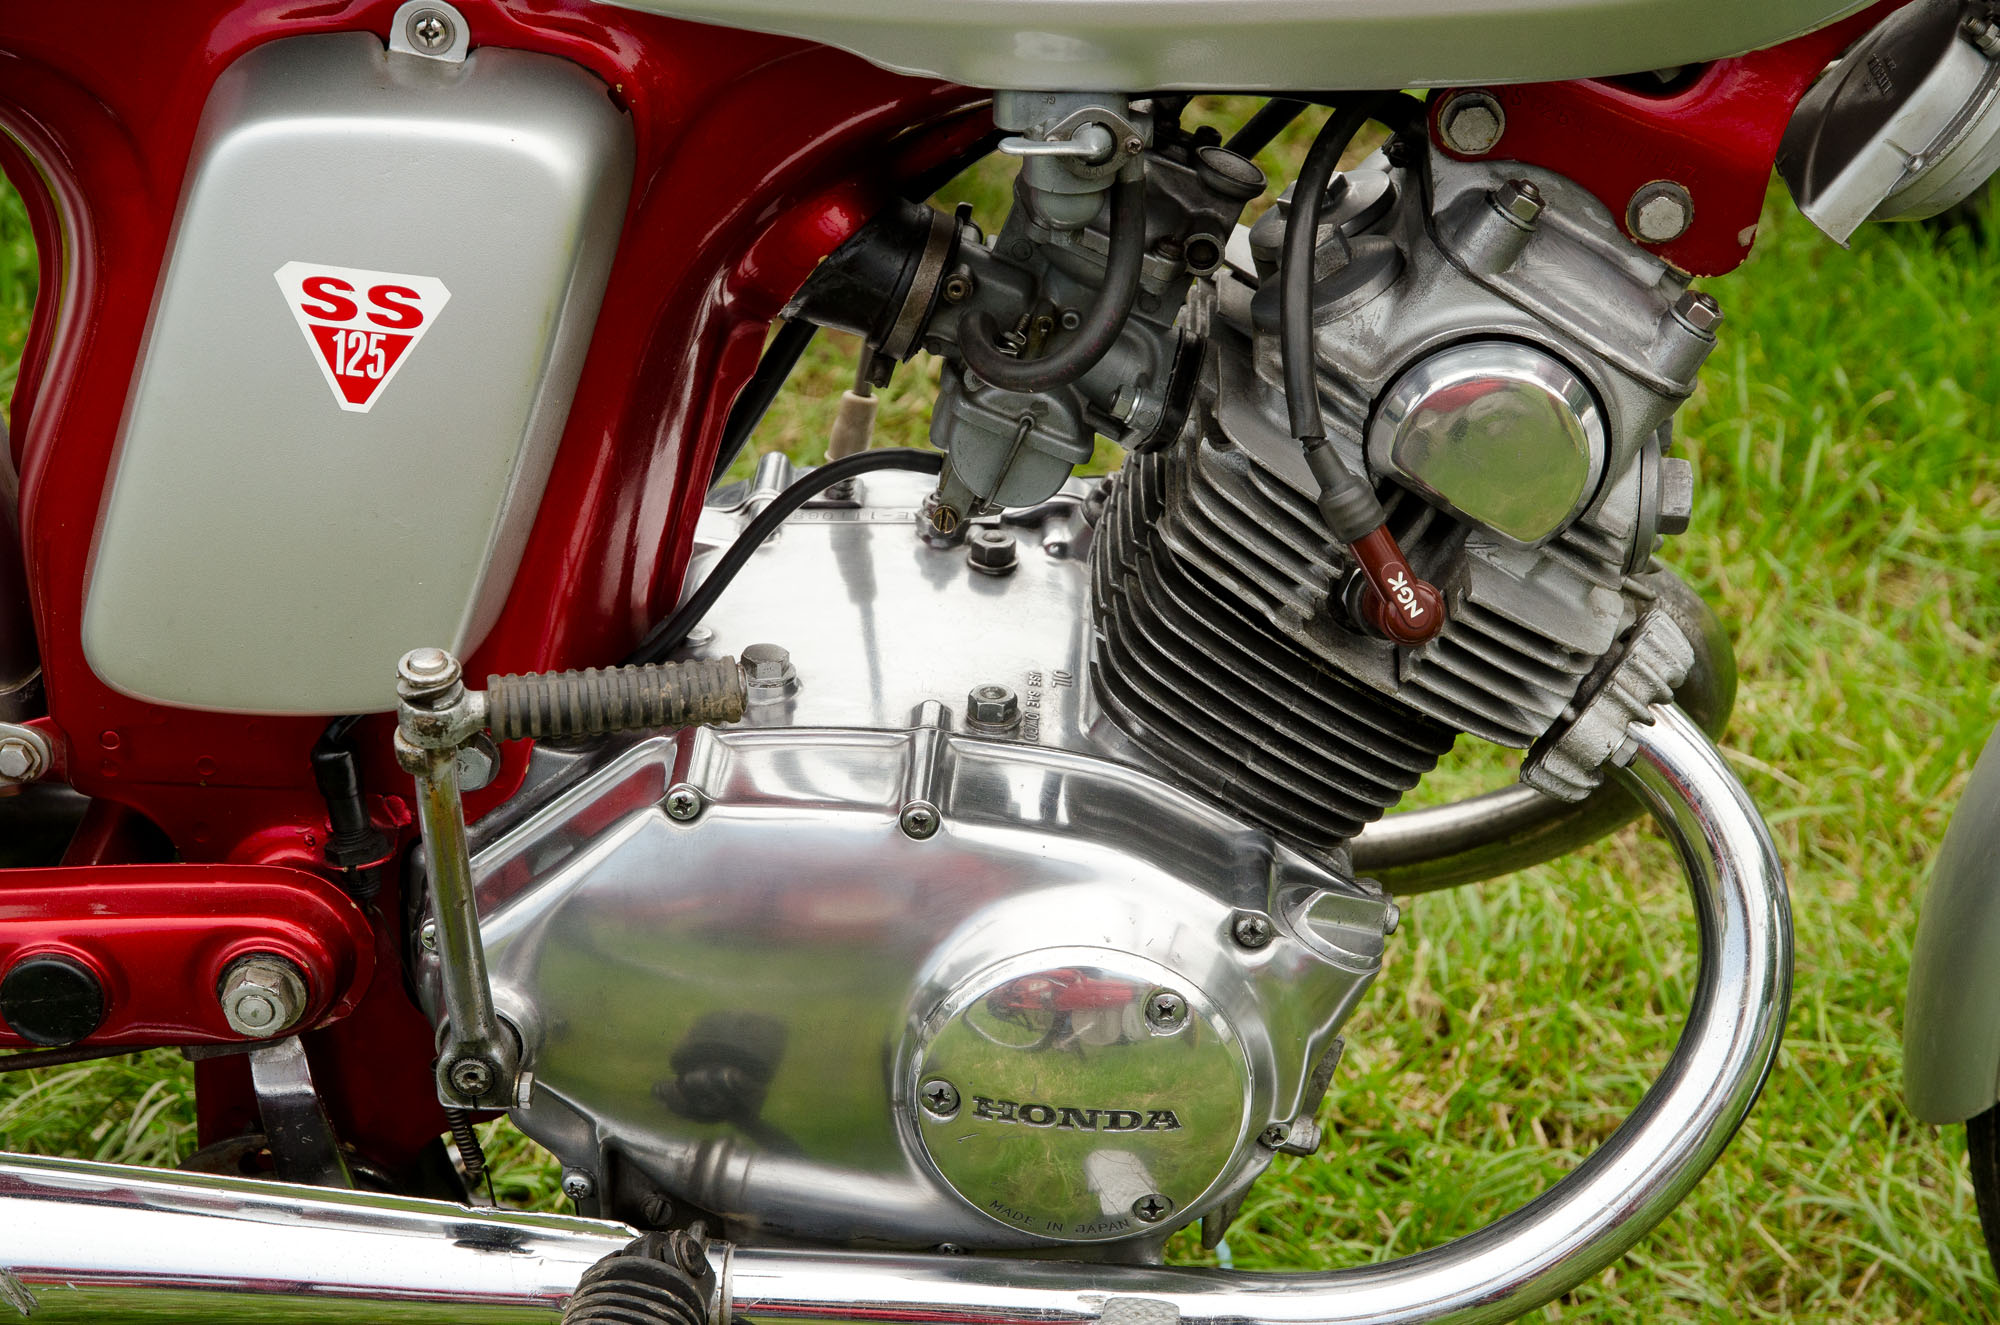 File 1969 Honda Ss125 Engine Jpg Wikimedia Commons